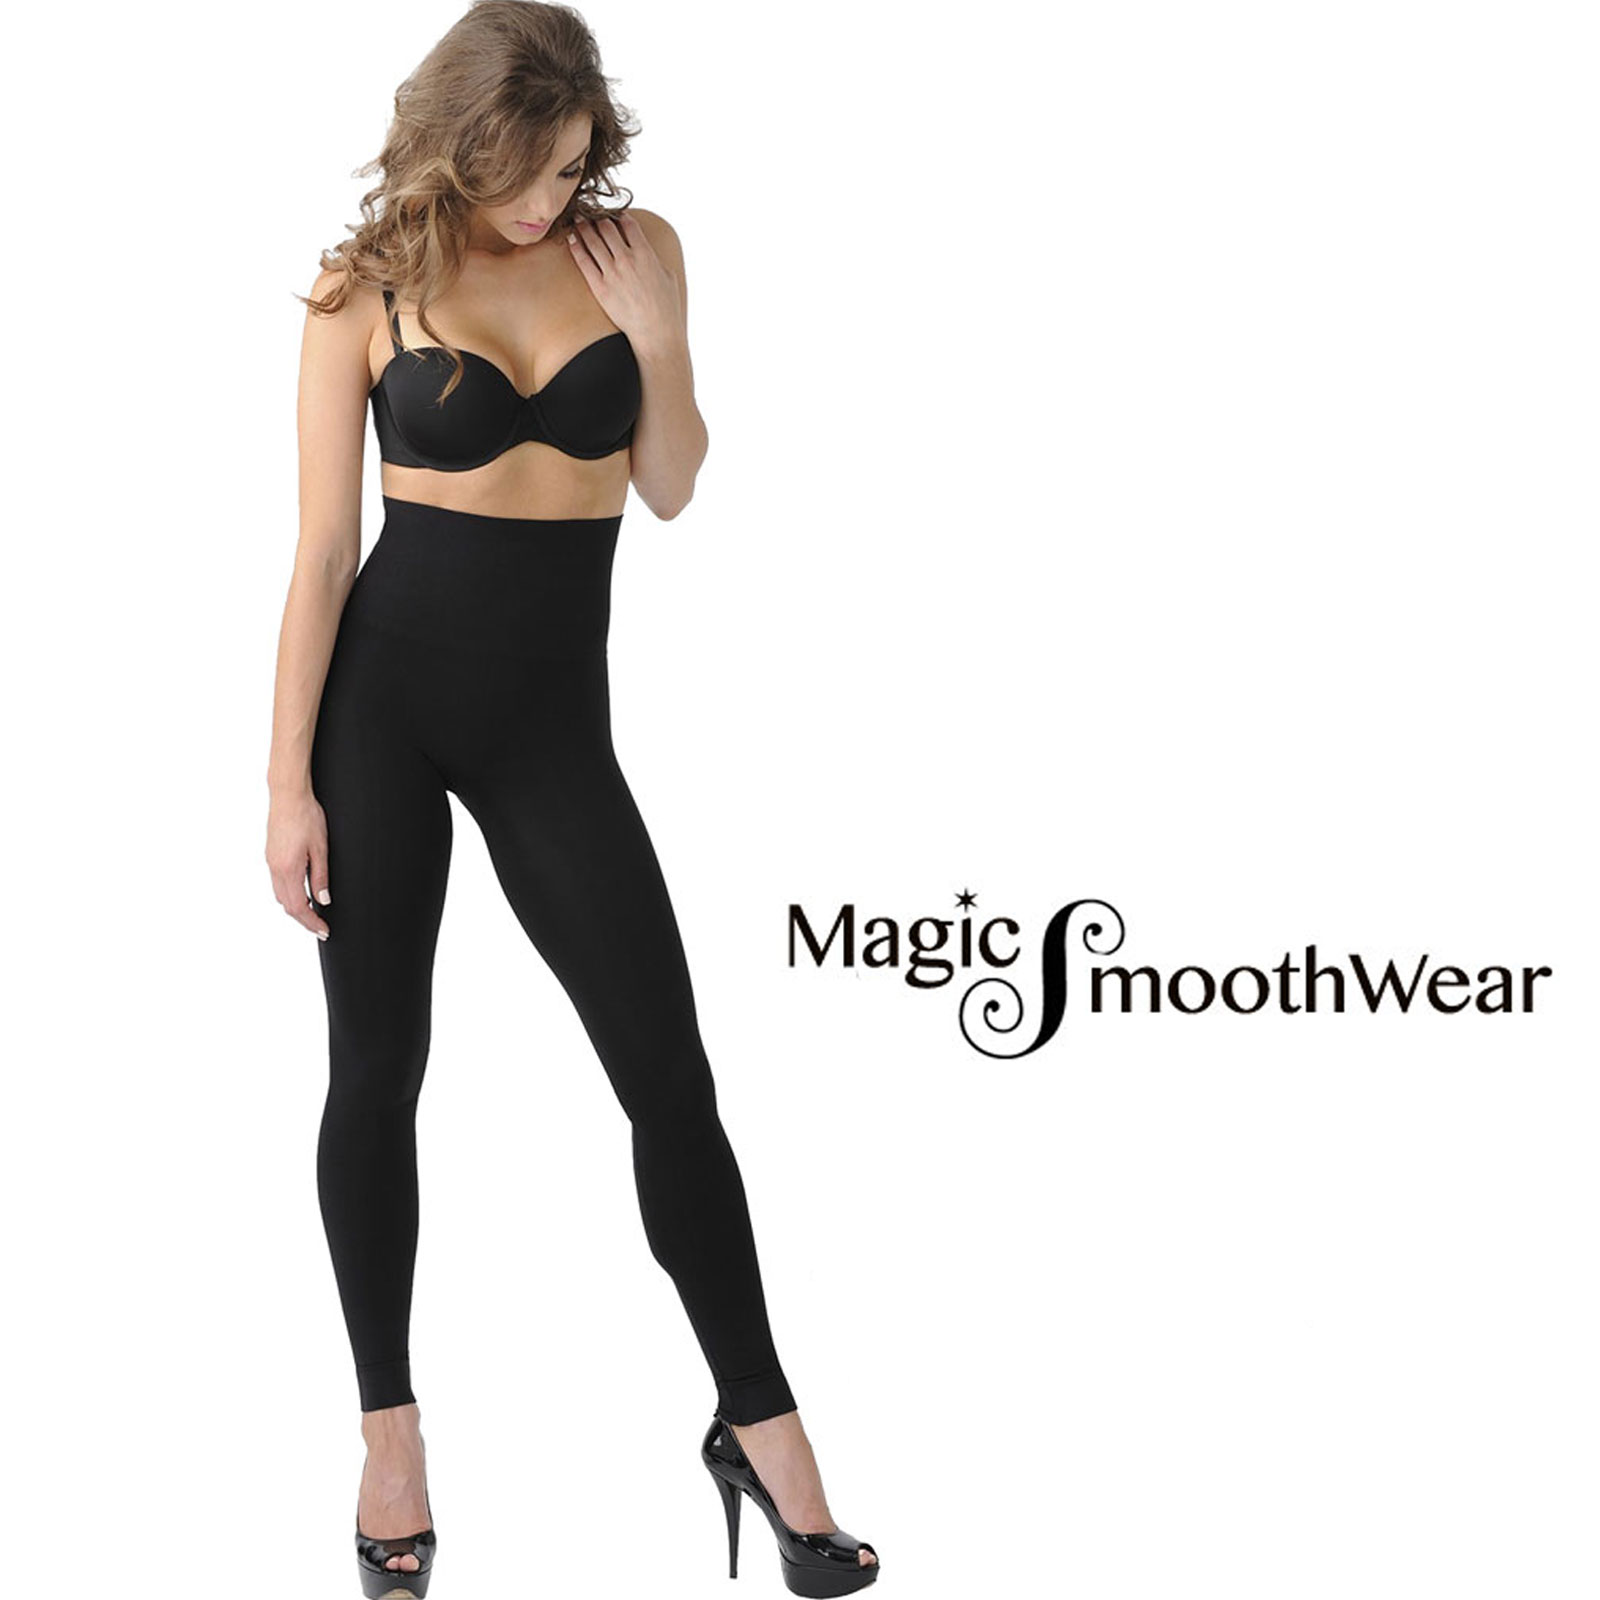 Magic Tummy Control SmoothWear Leggings and Capris